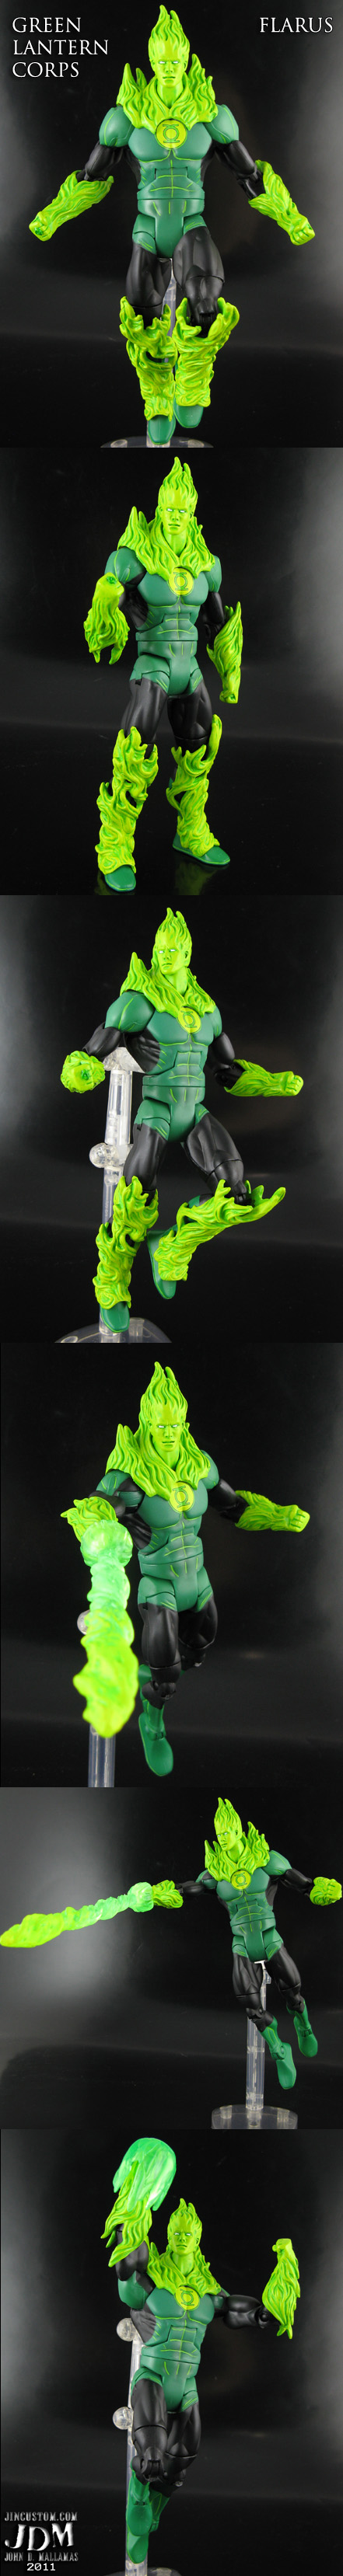 Green Lantern Corps Flarus by Jin-Saotome